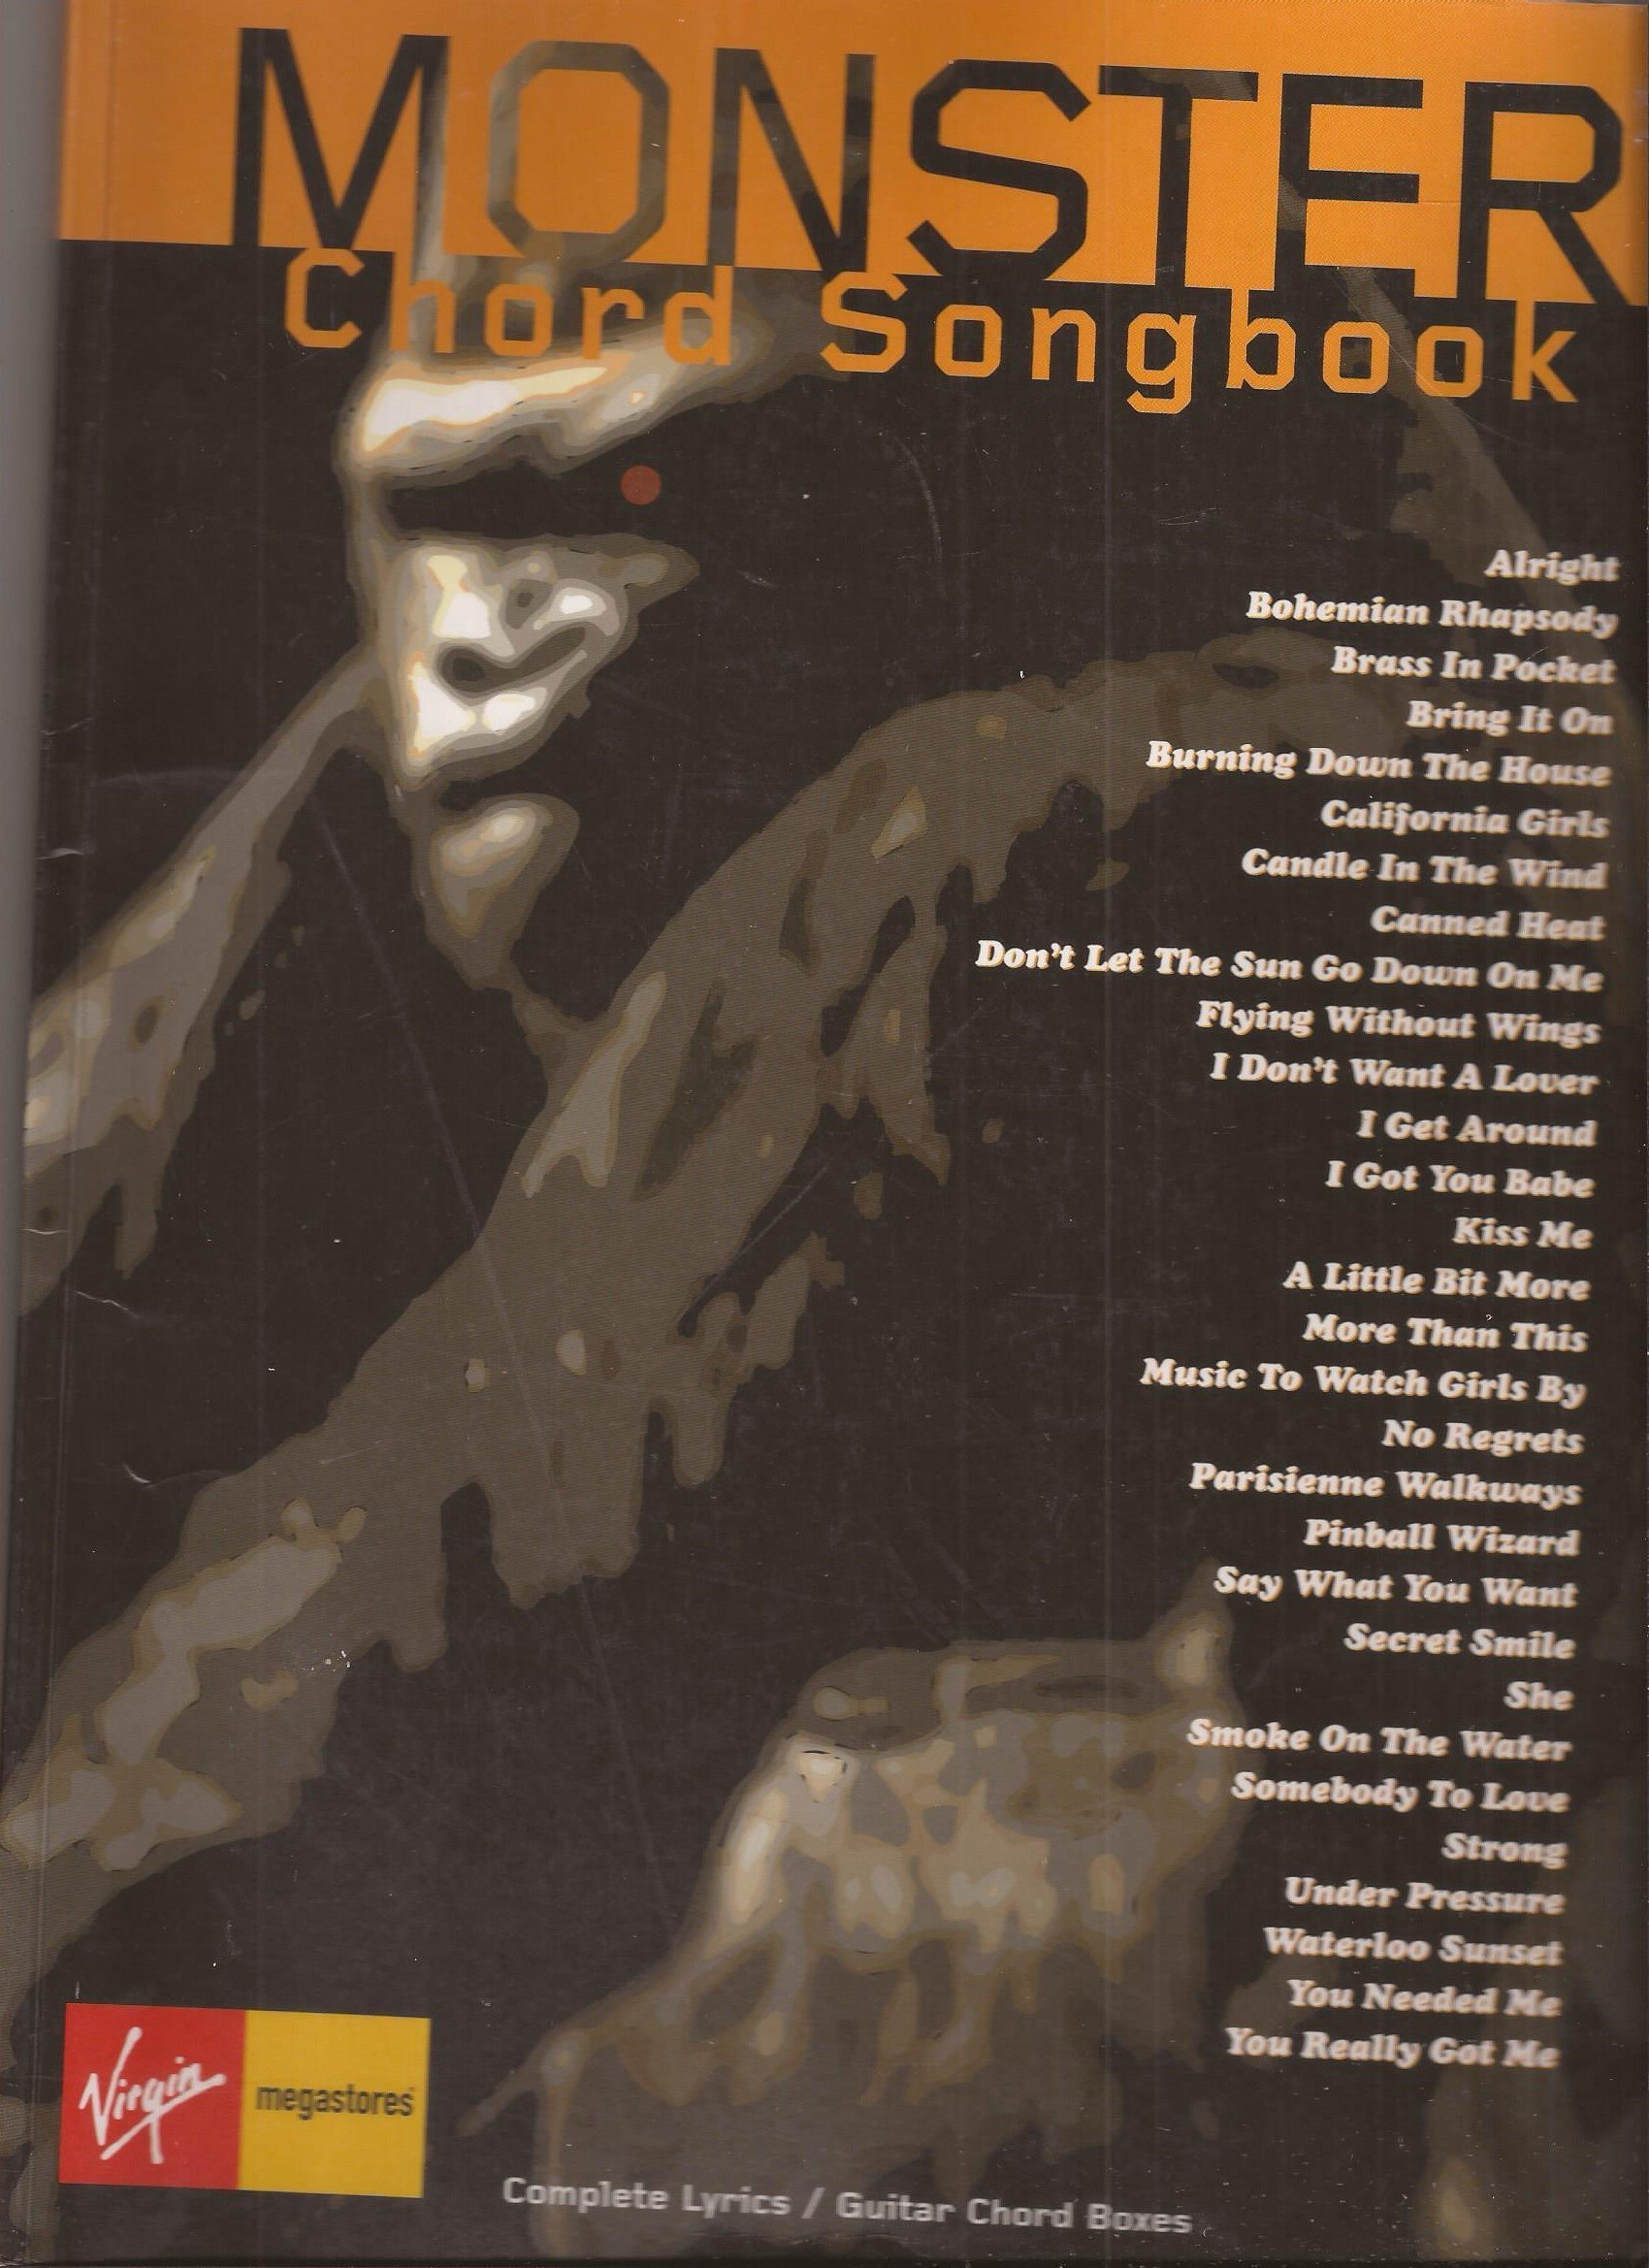 Monster Chord Songbook Amazon 9781859099438 Books